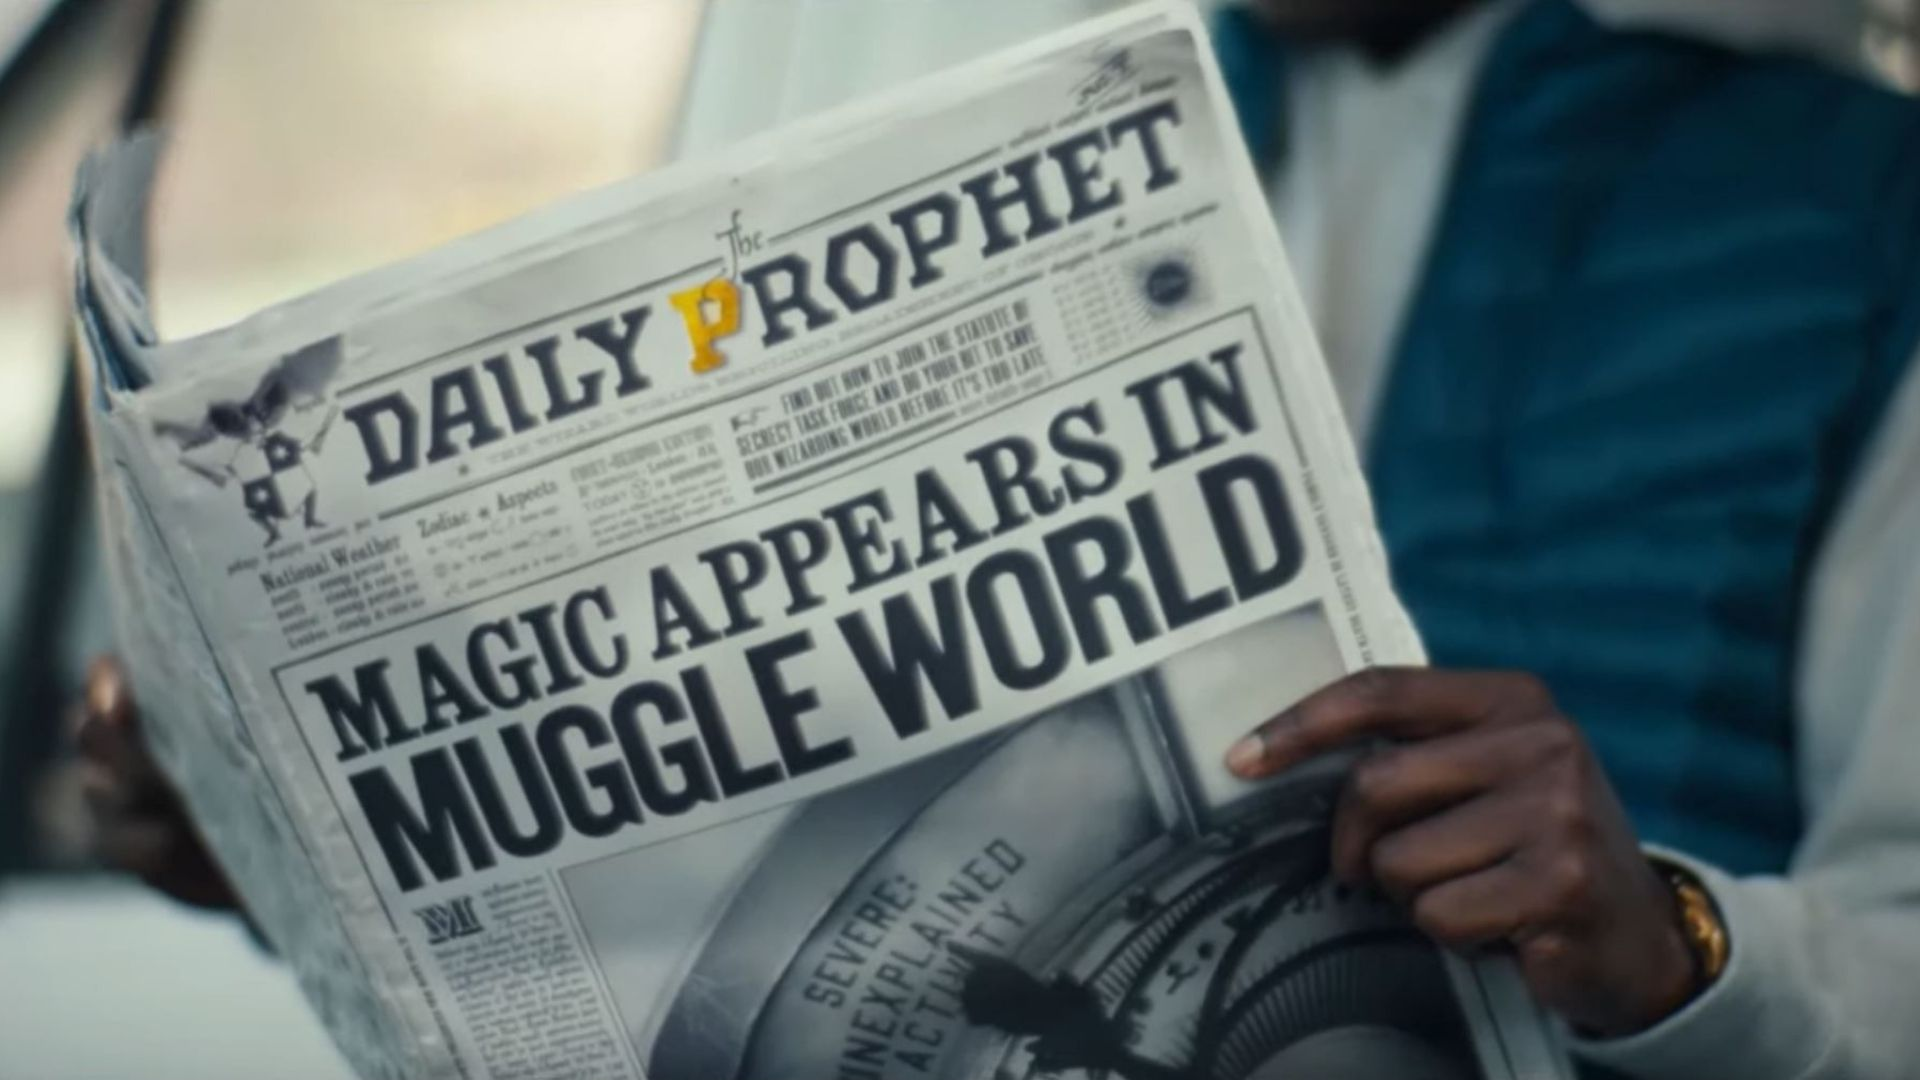 harry potter wizard unite image